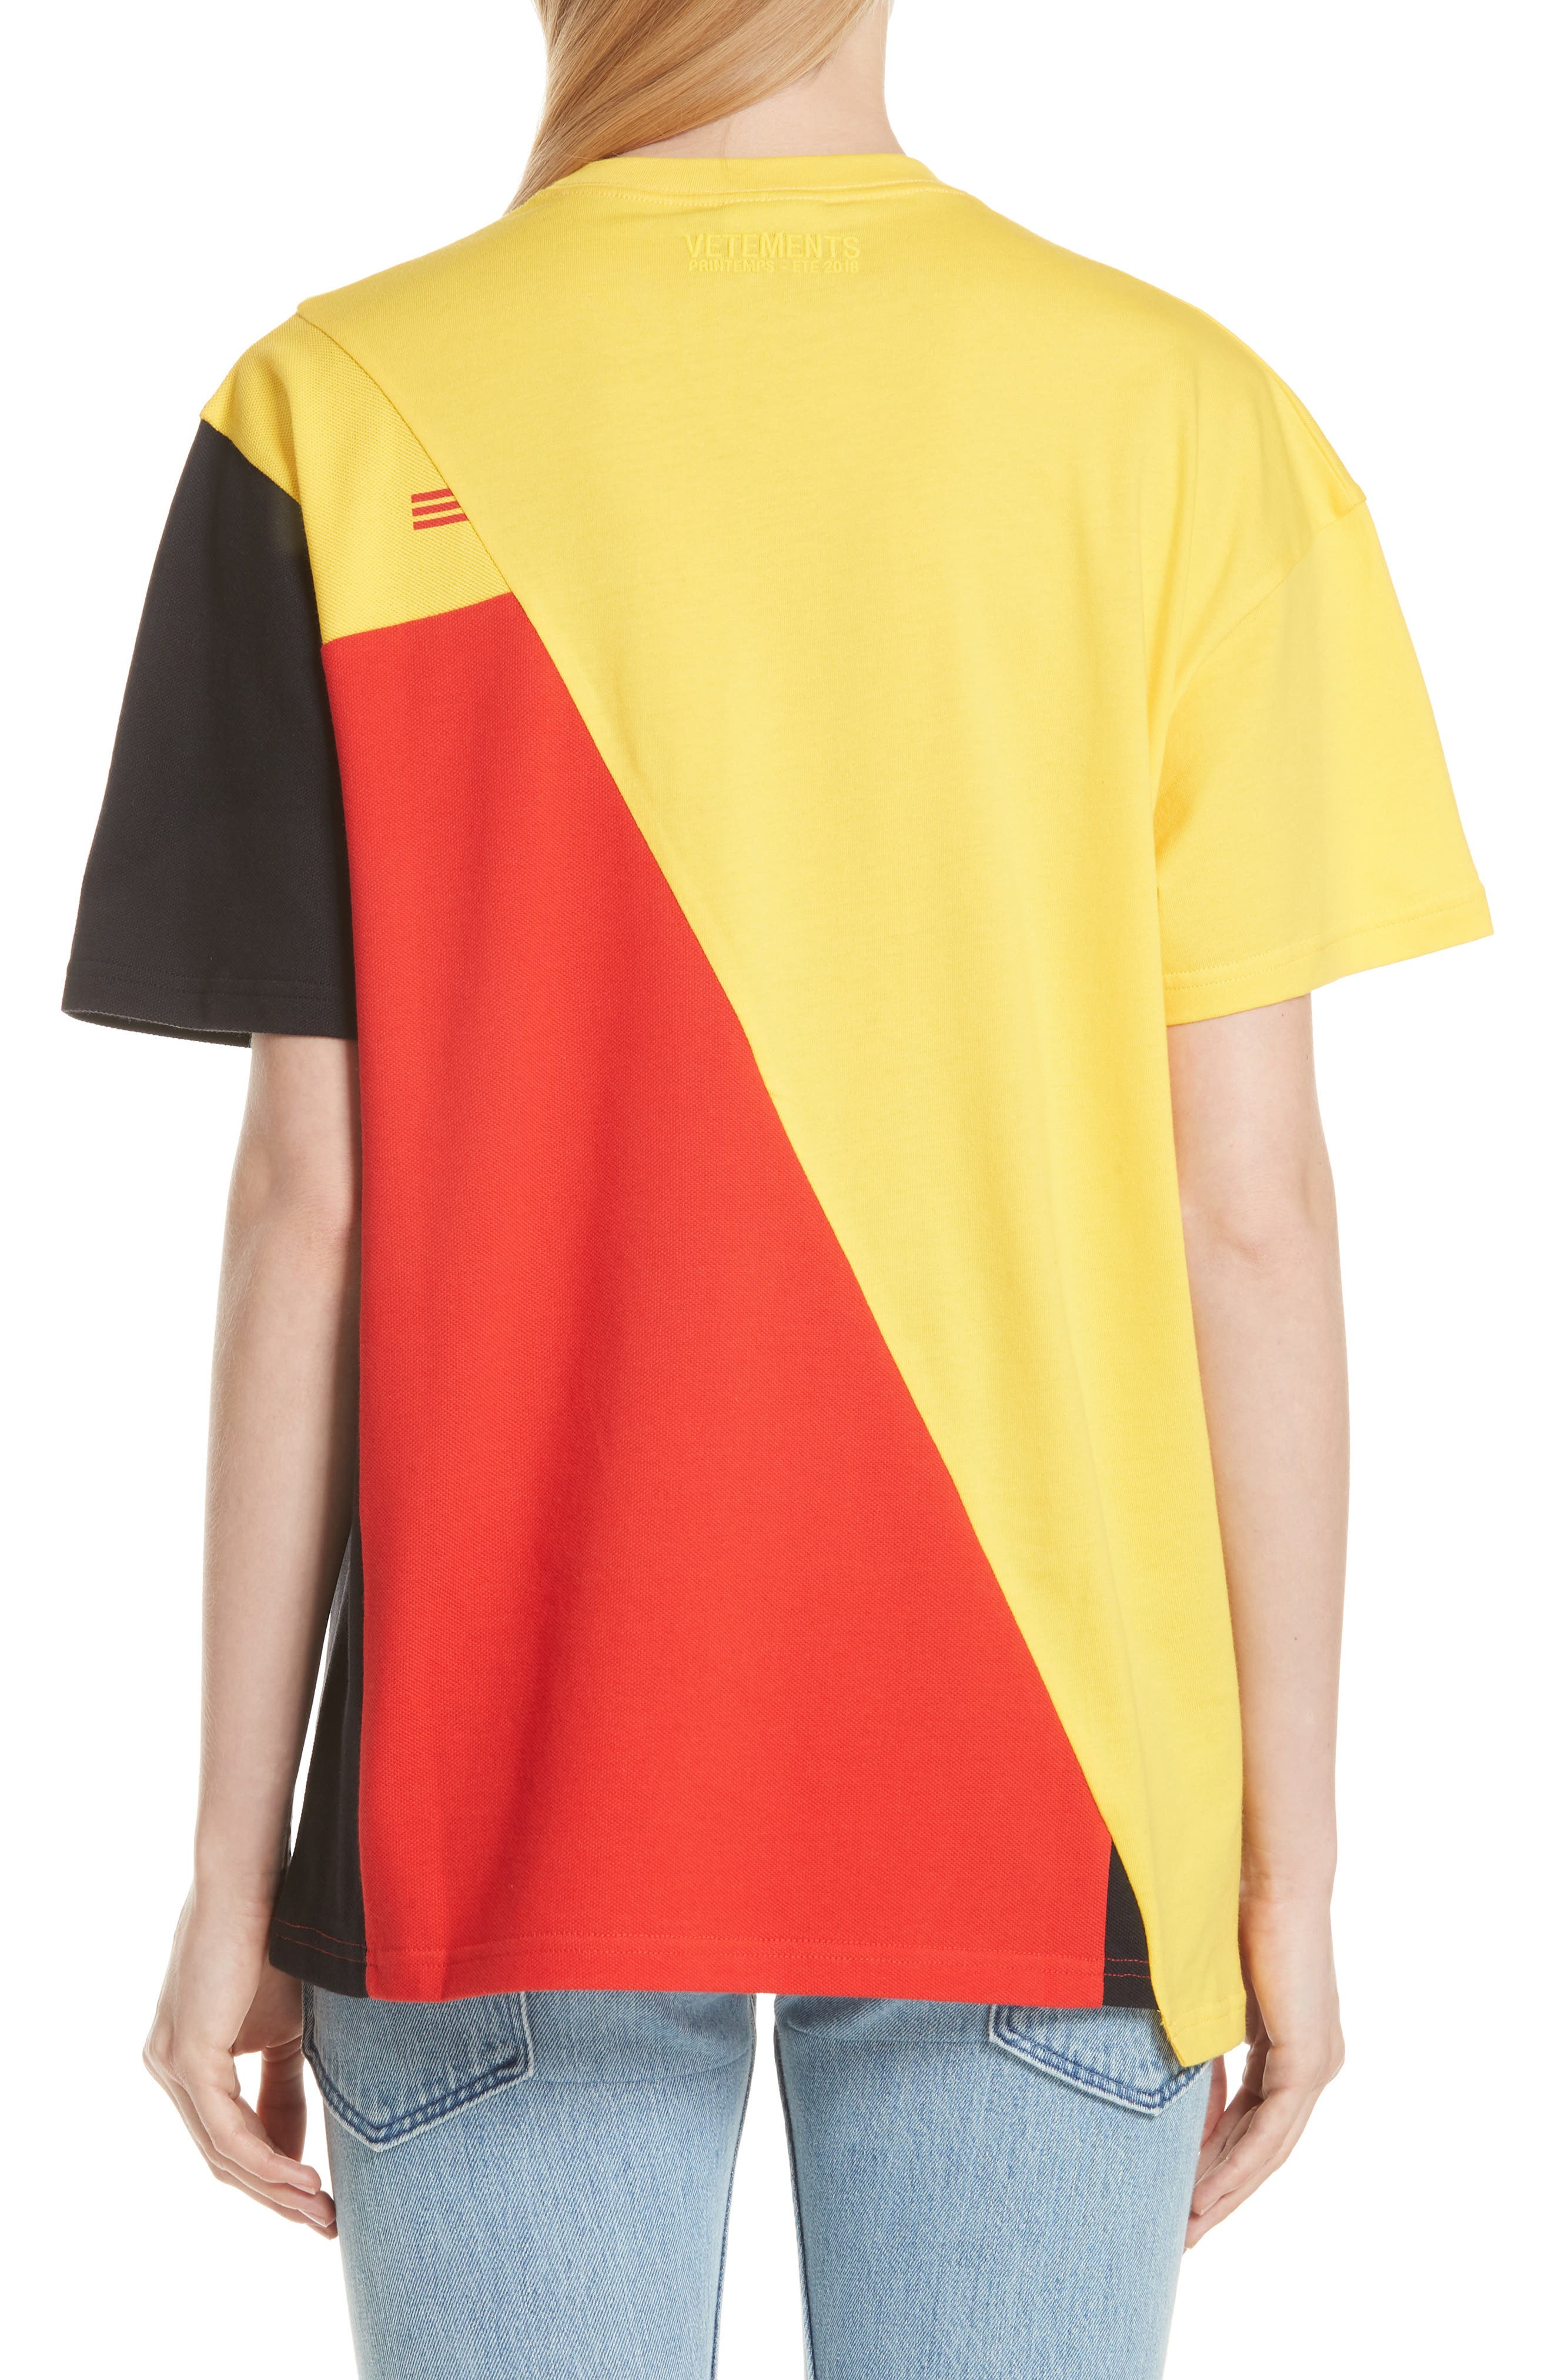 DHL Cut-Up Tee,                             Alternate thumbnail 2, color,                             Yellow